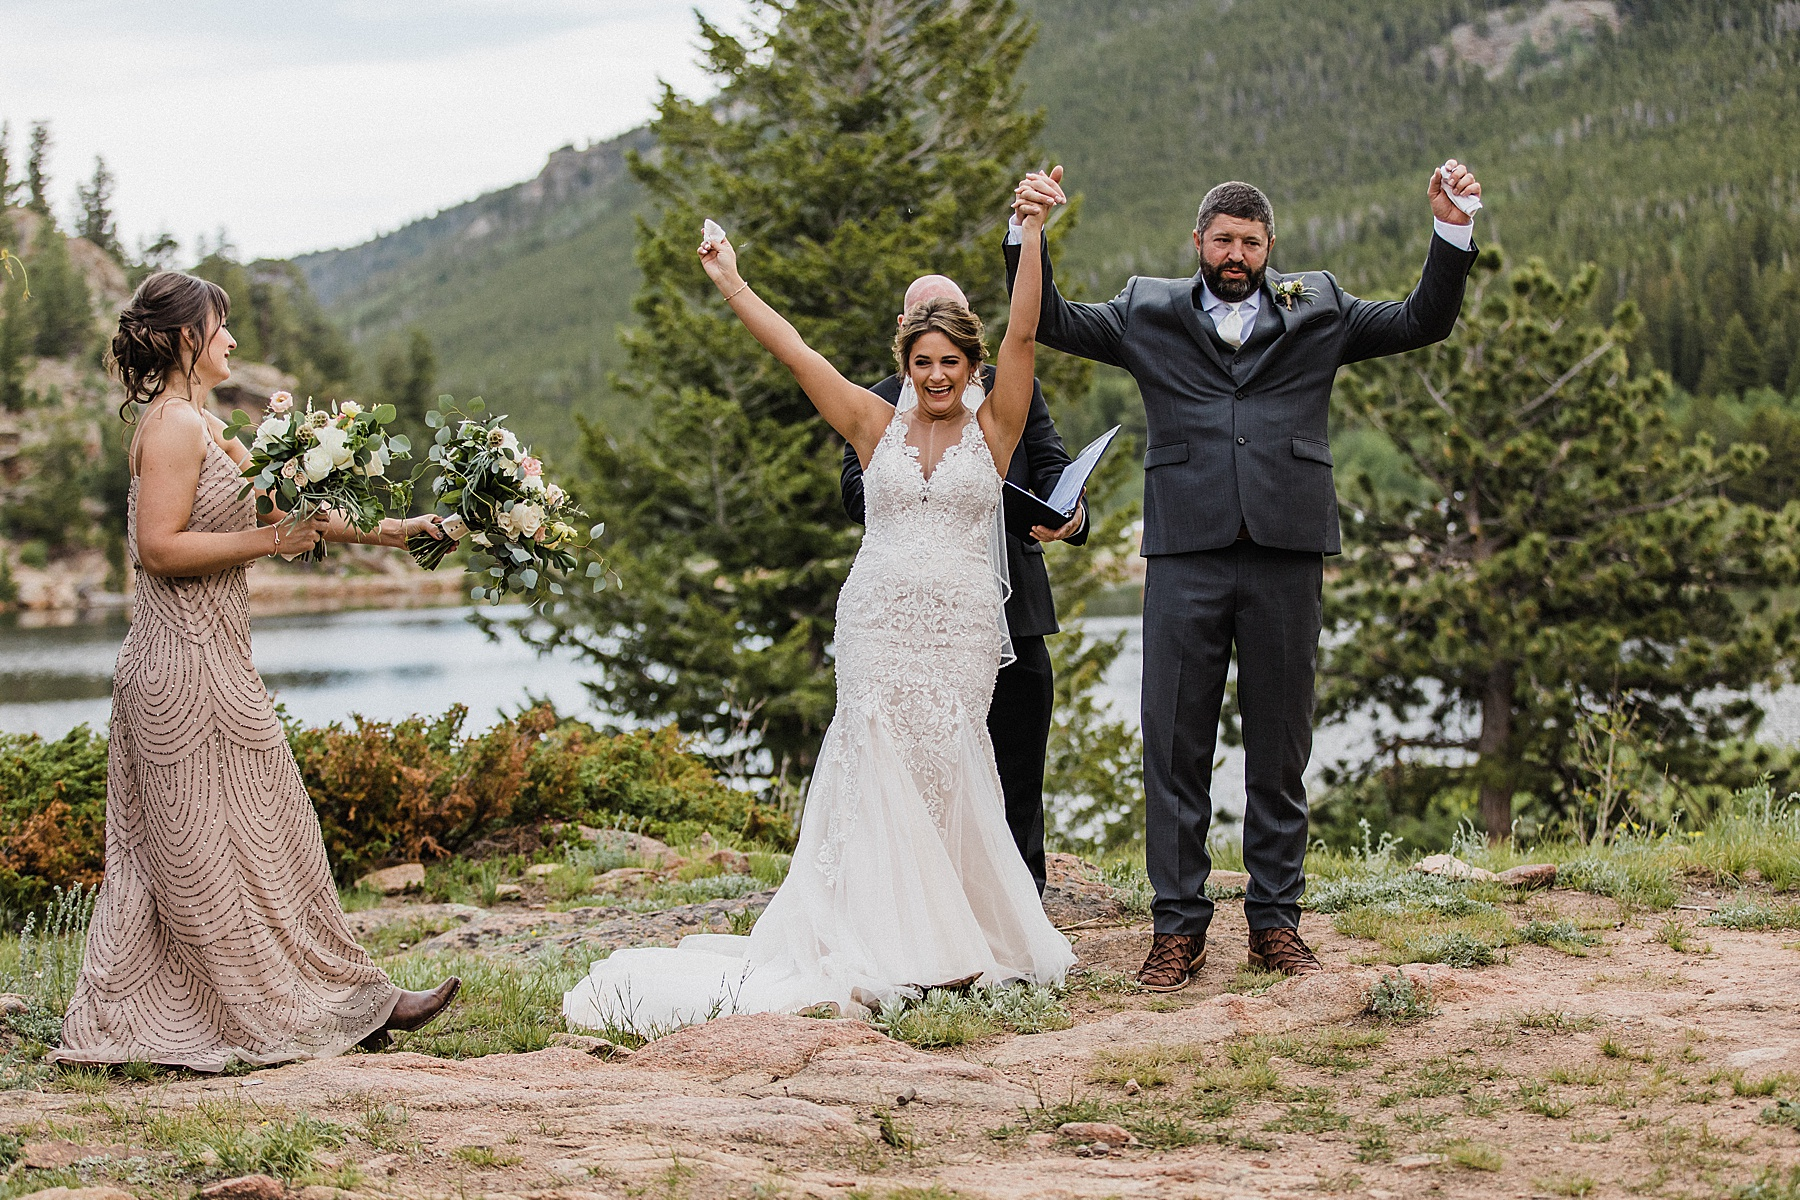 Lily Lake Elopement in Rocky Mountain National Park | Vow of the Wild